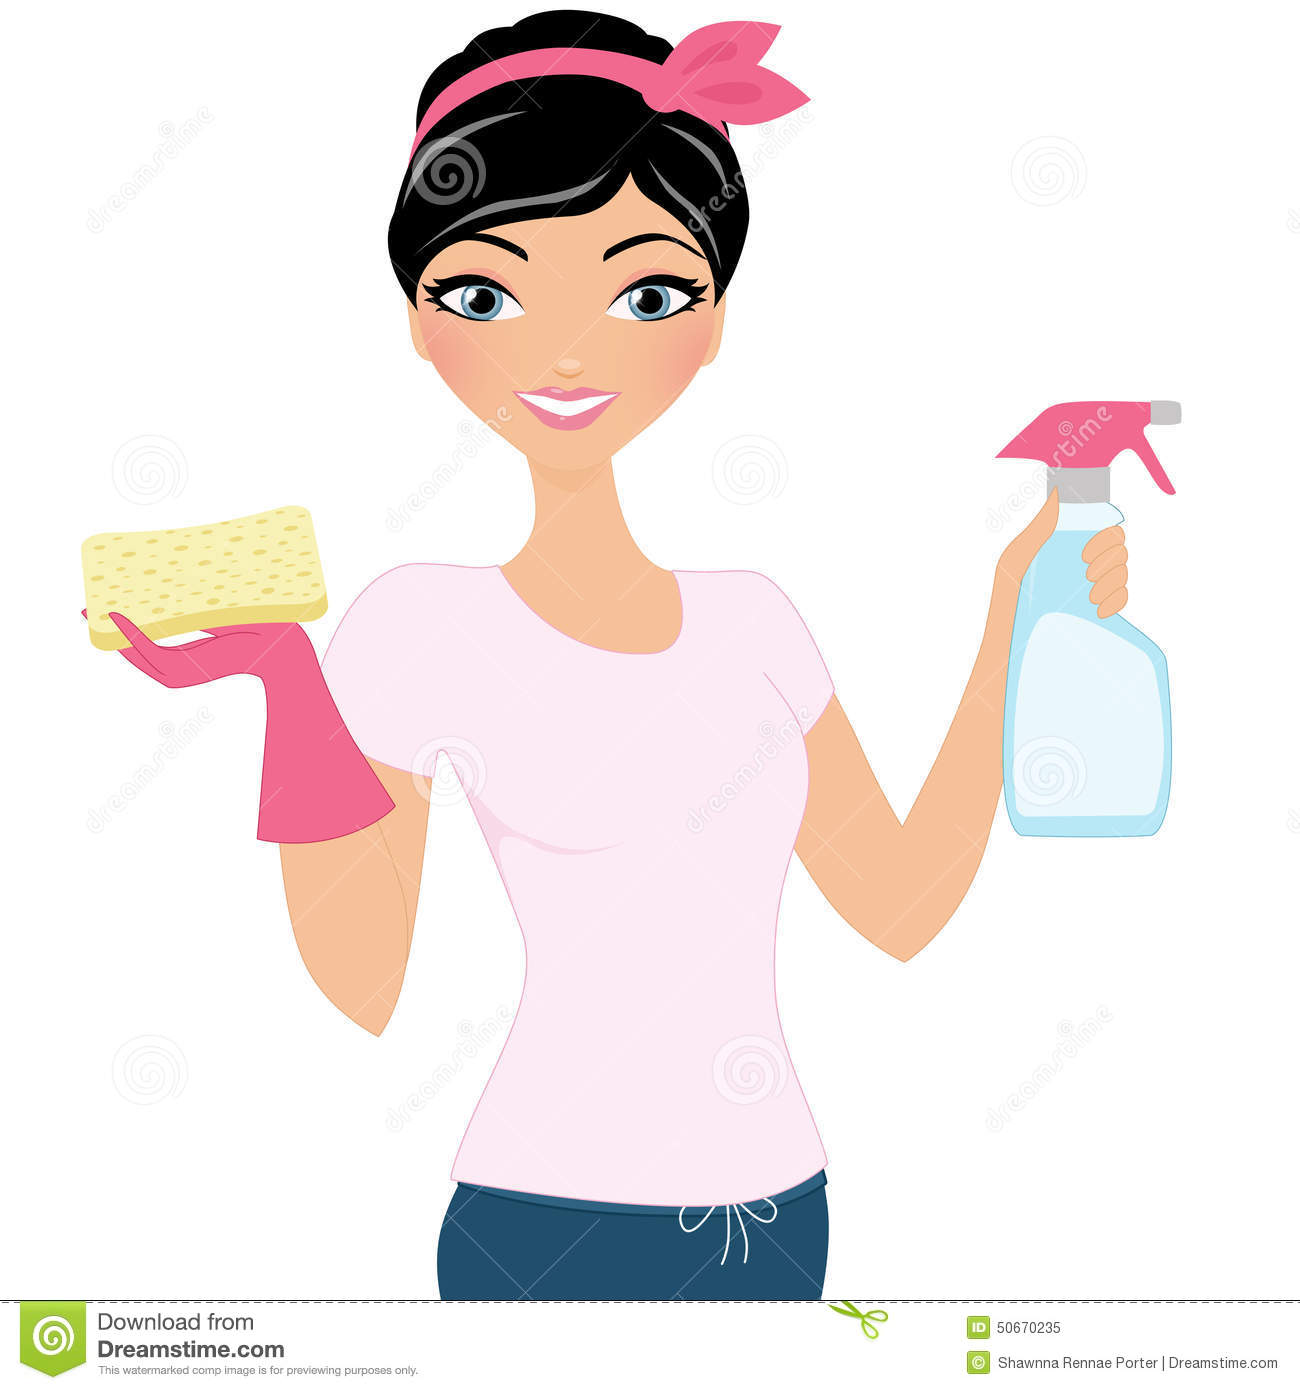 Clipart Of Woman Cleaning Free.